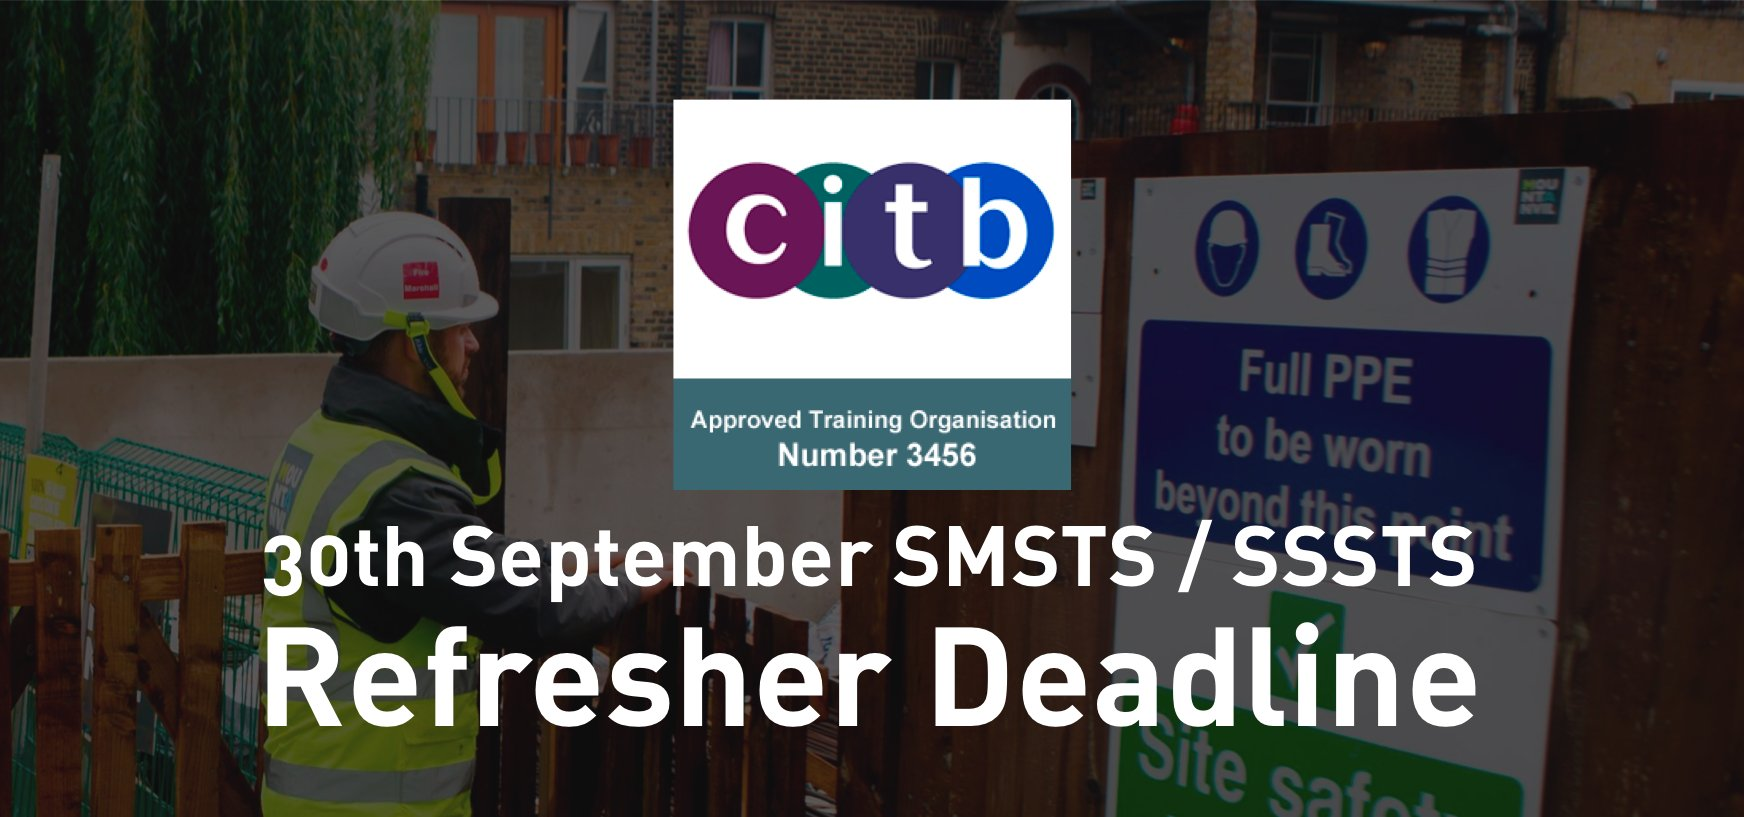 CITB SMSTS & SSSTS Refresher Deadline